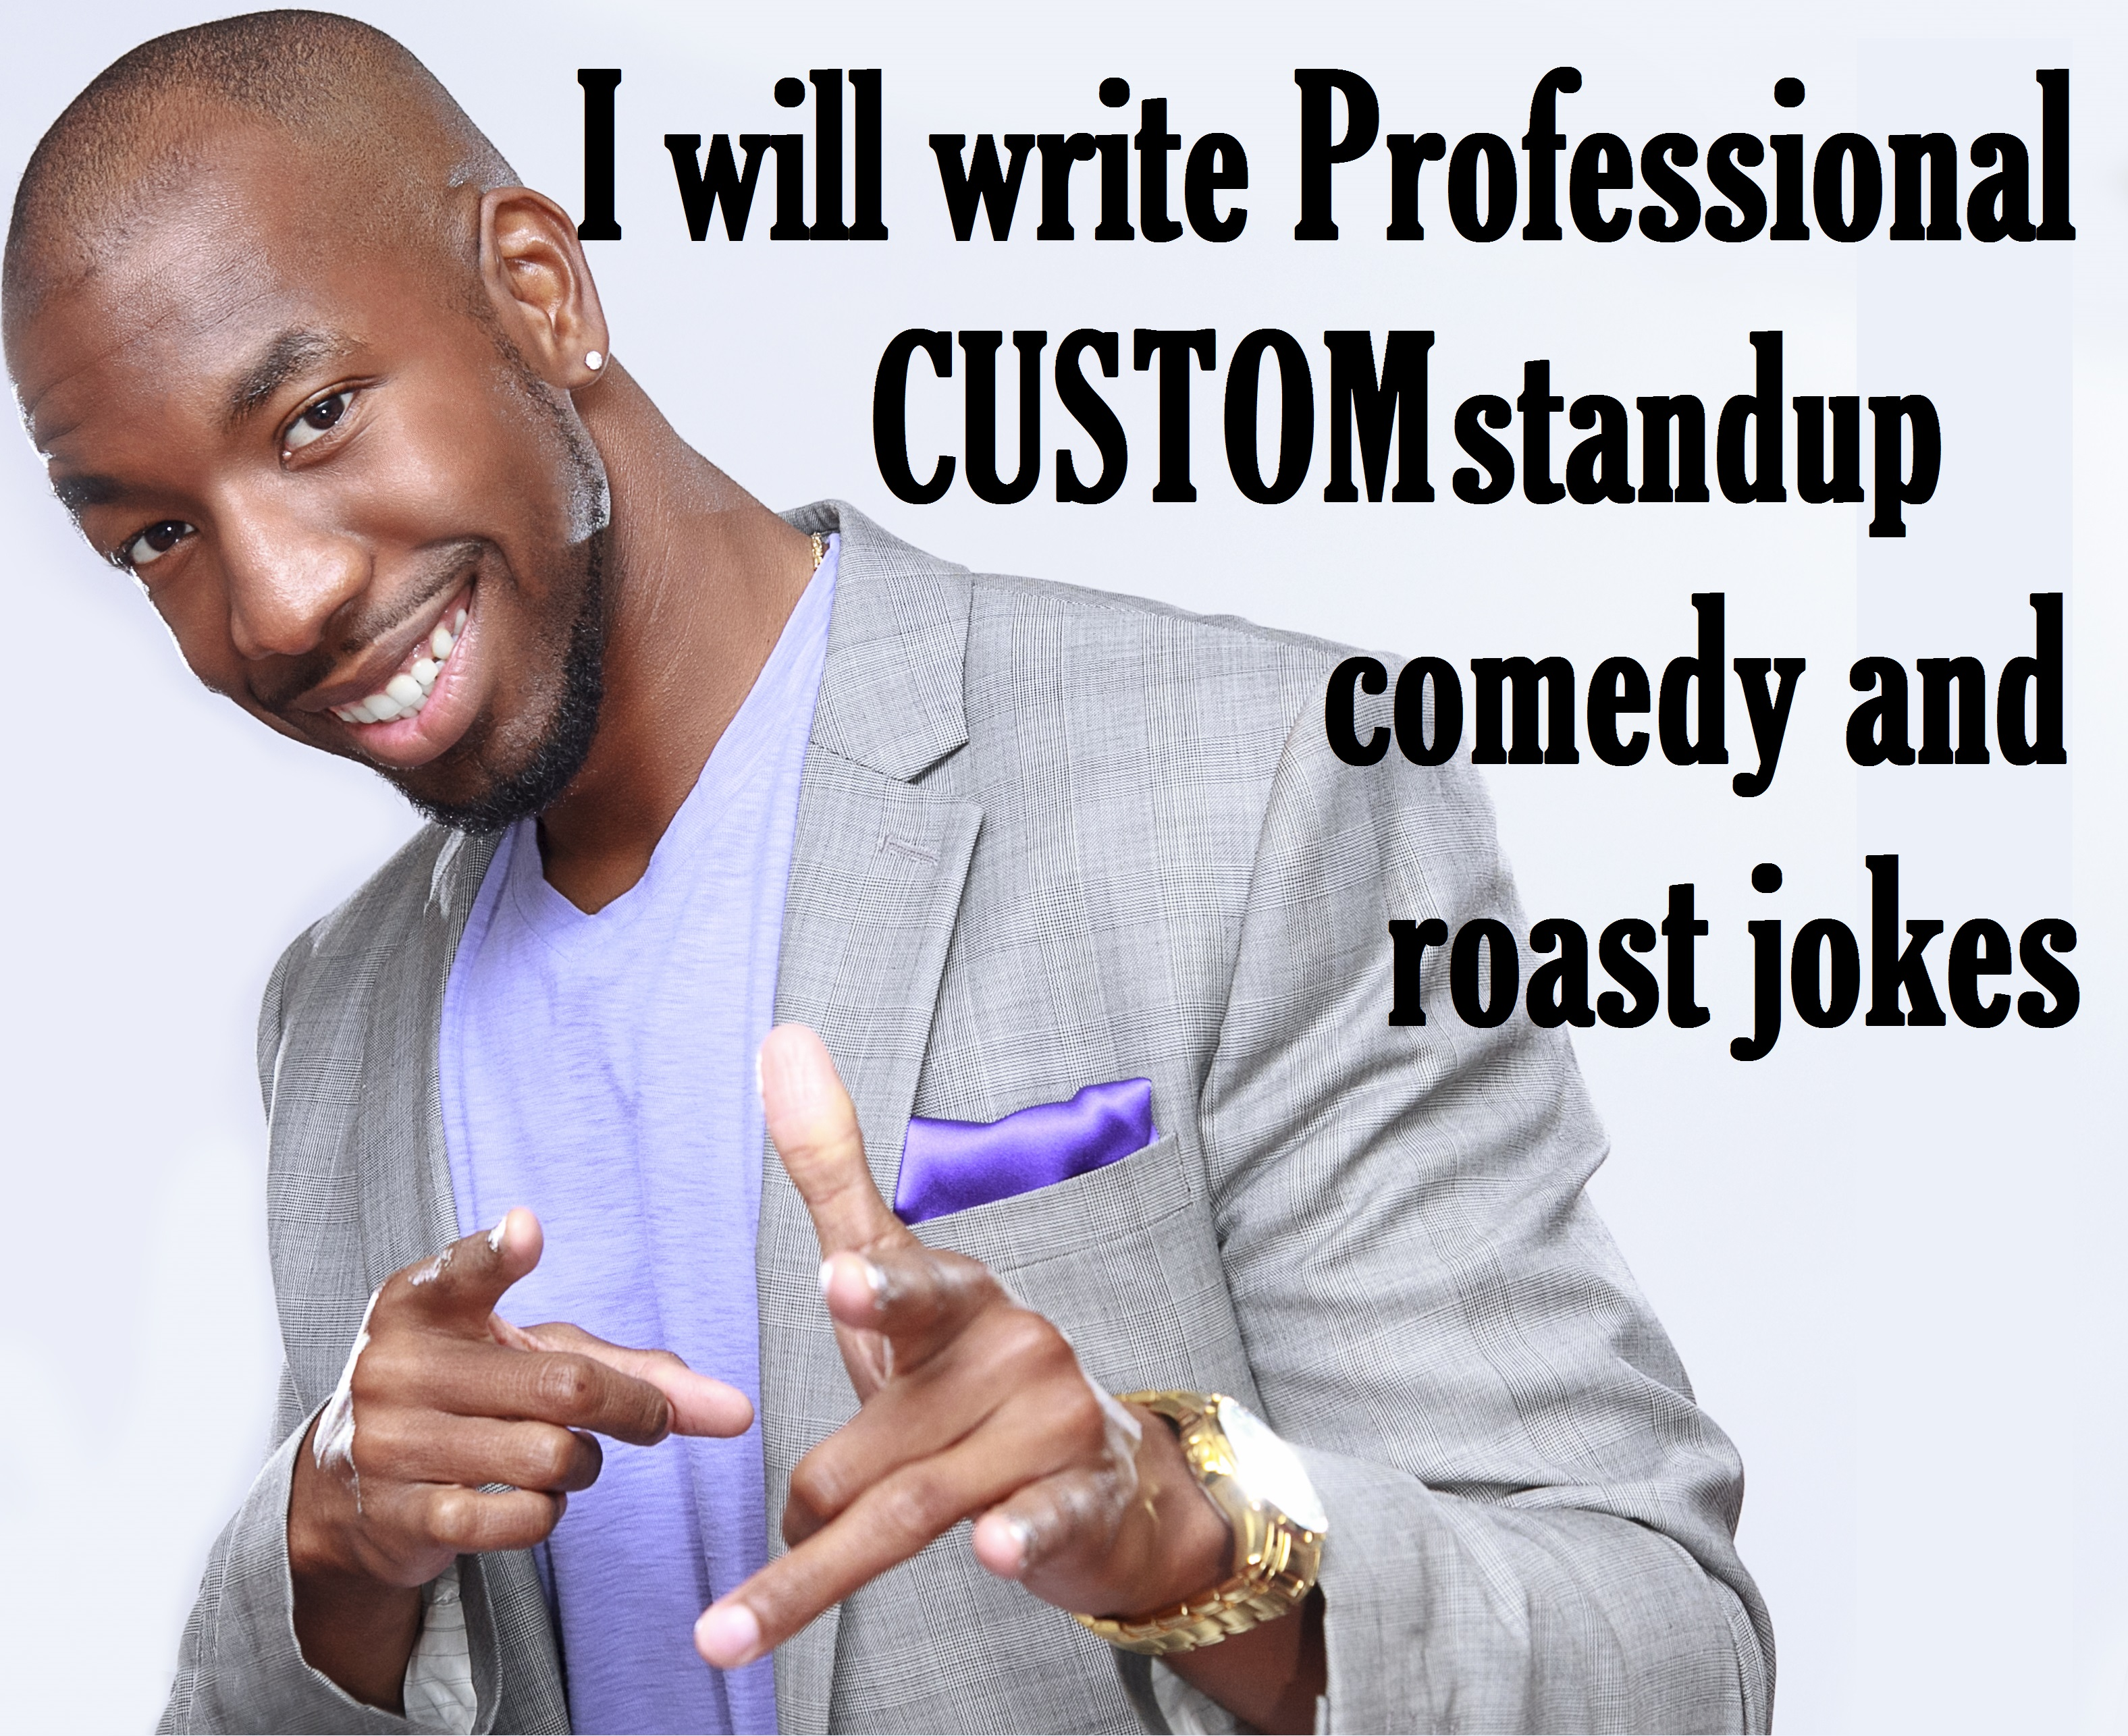 I will write professional custom standup comedy and roast jokes